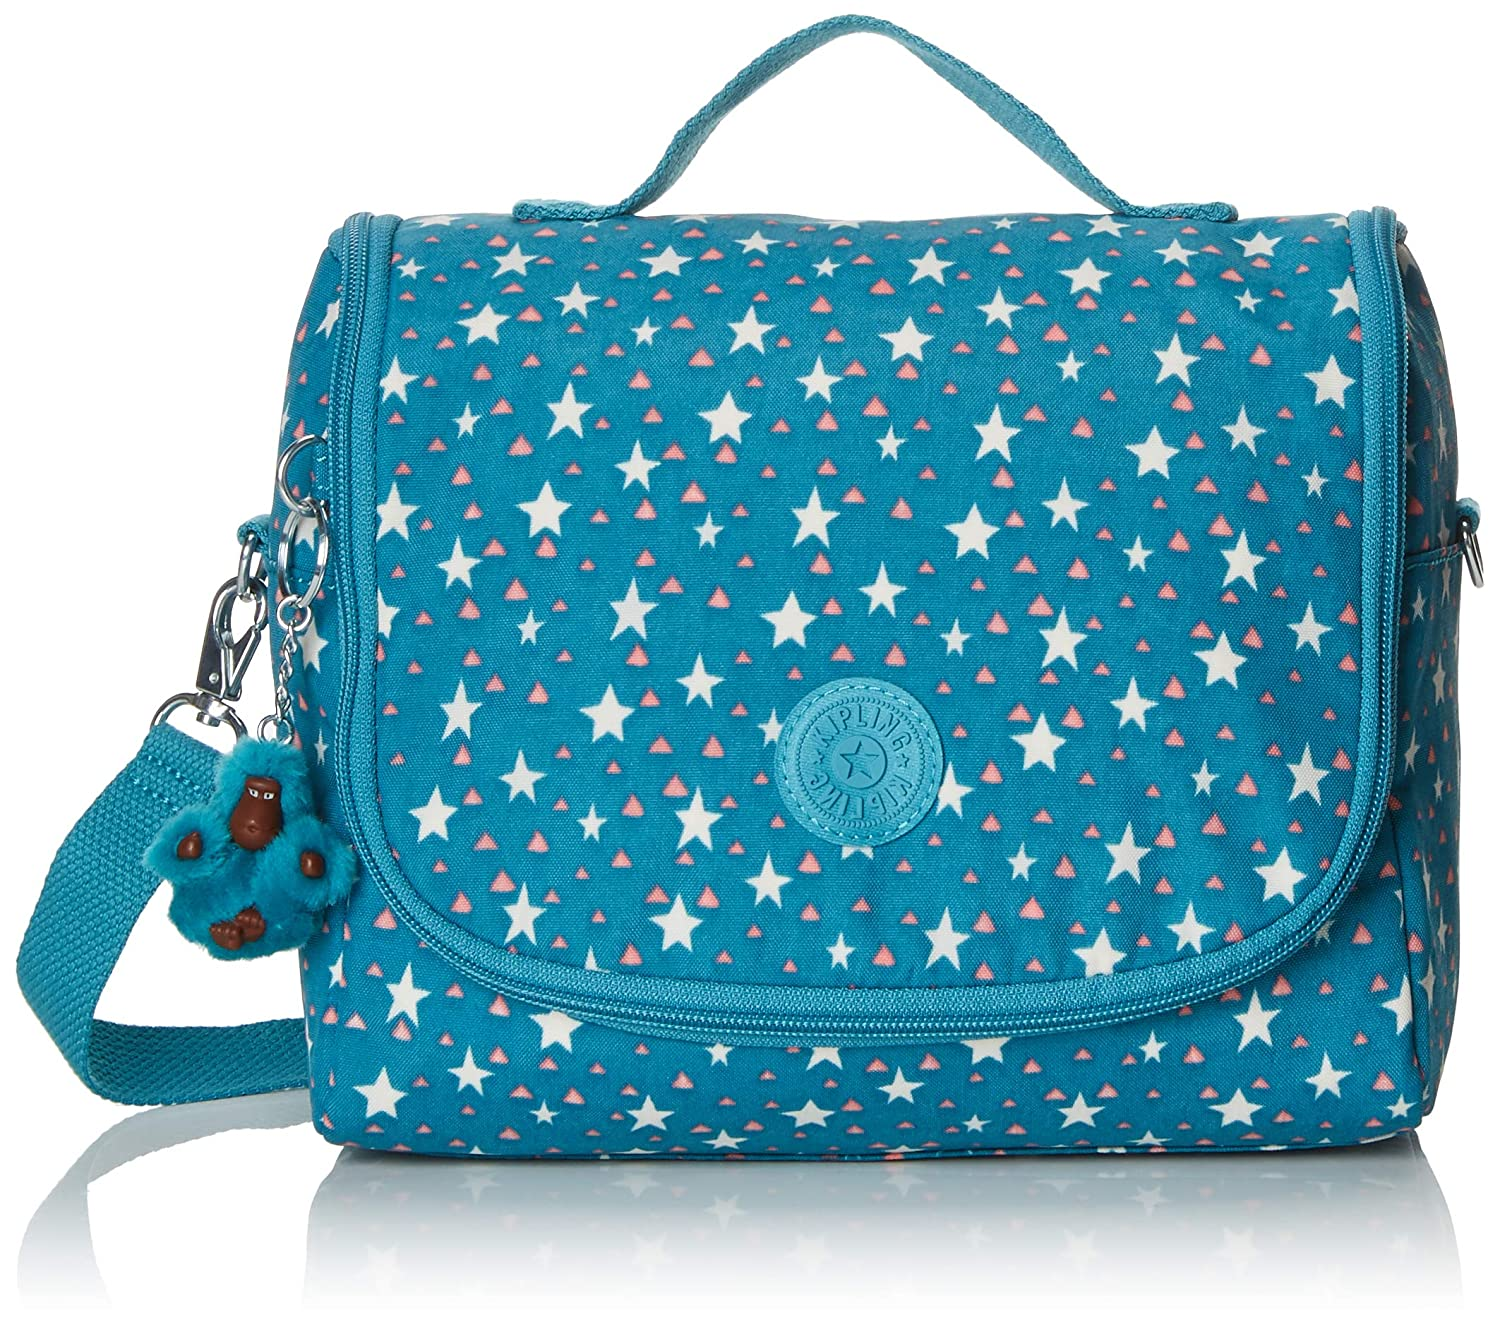 Amazon.com: Kipling Girls School Bag New Kichirou Cool Star ...